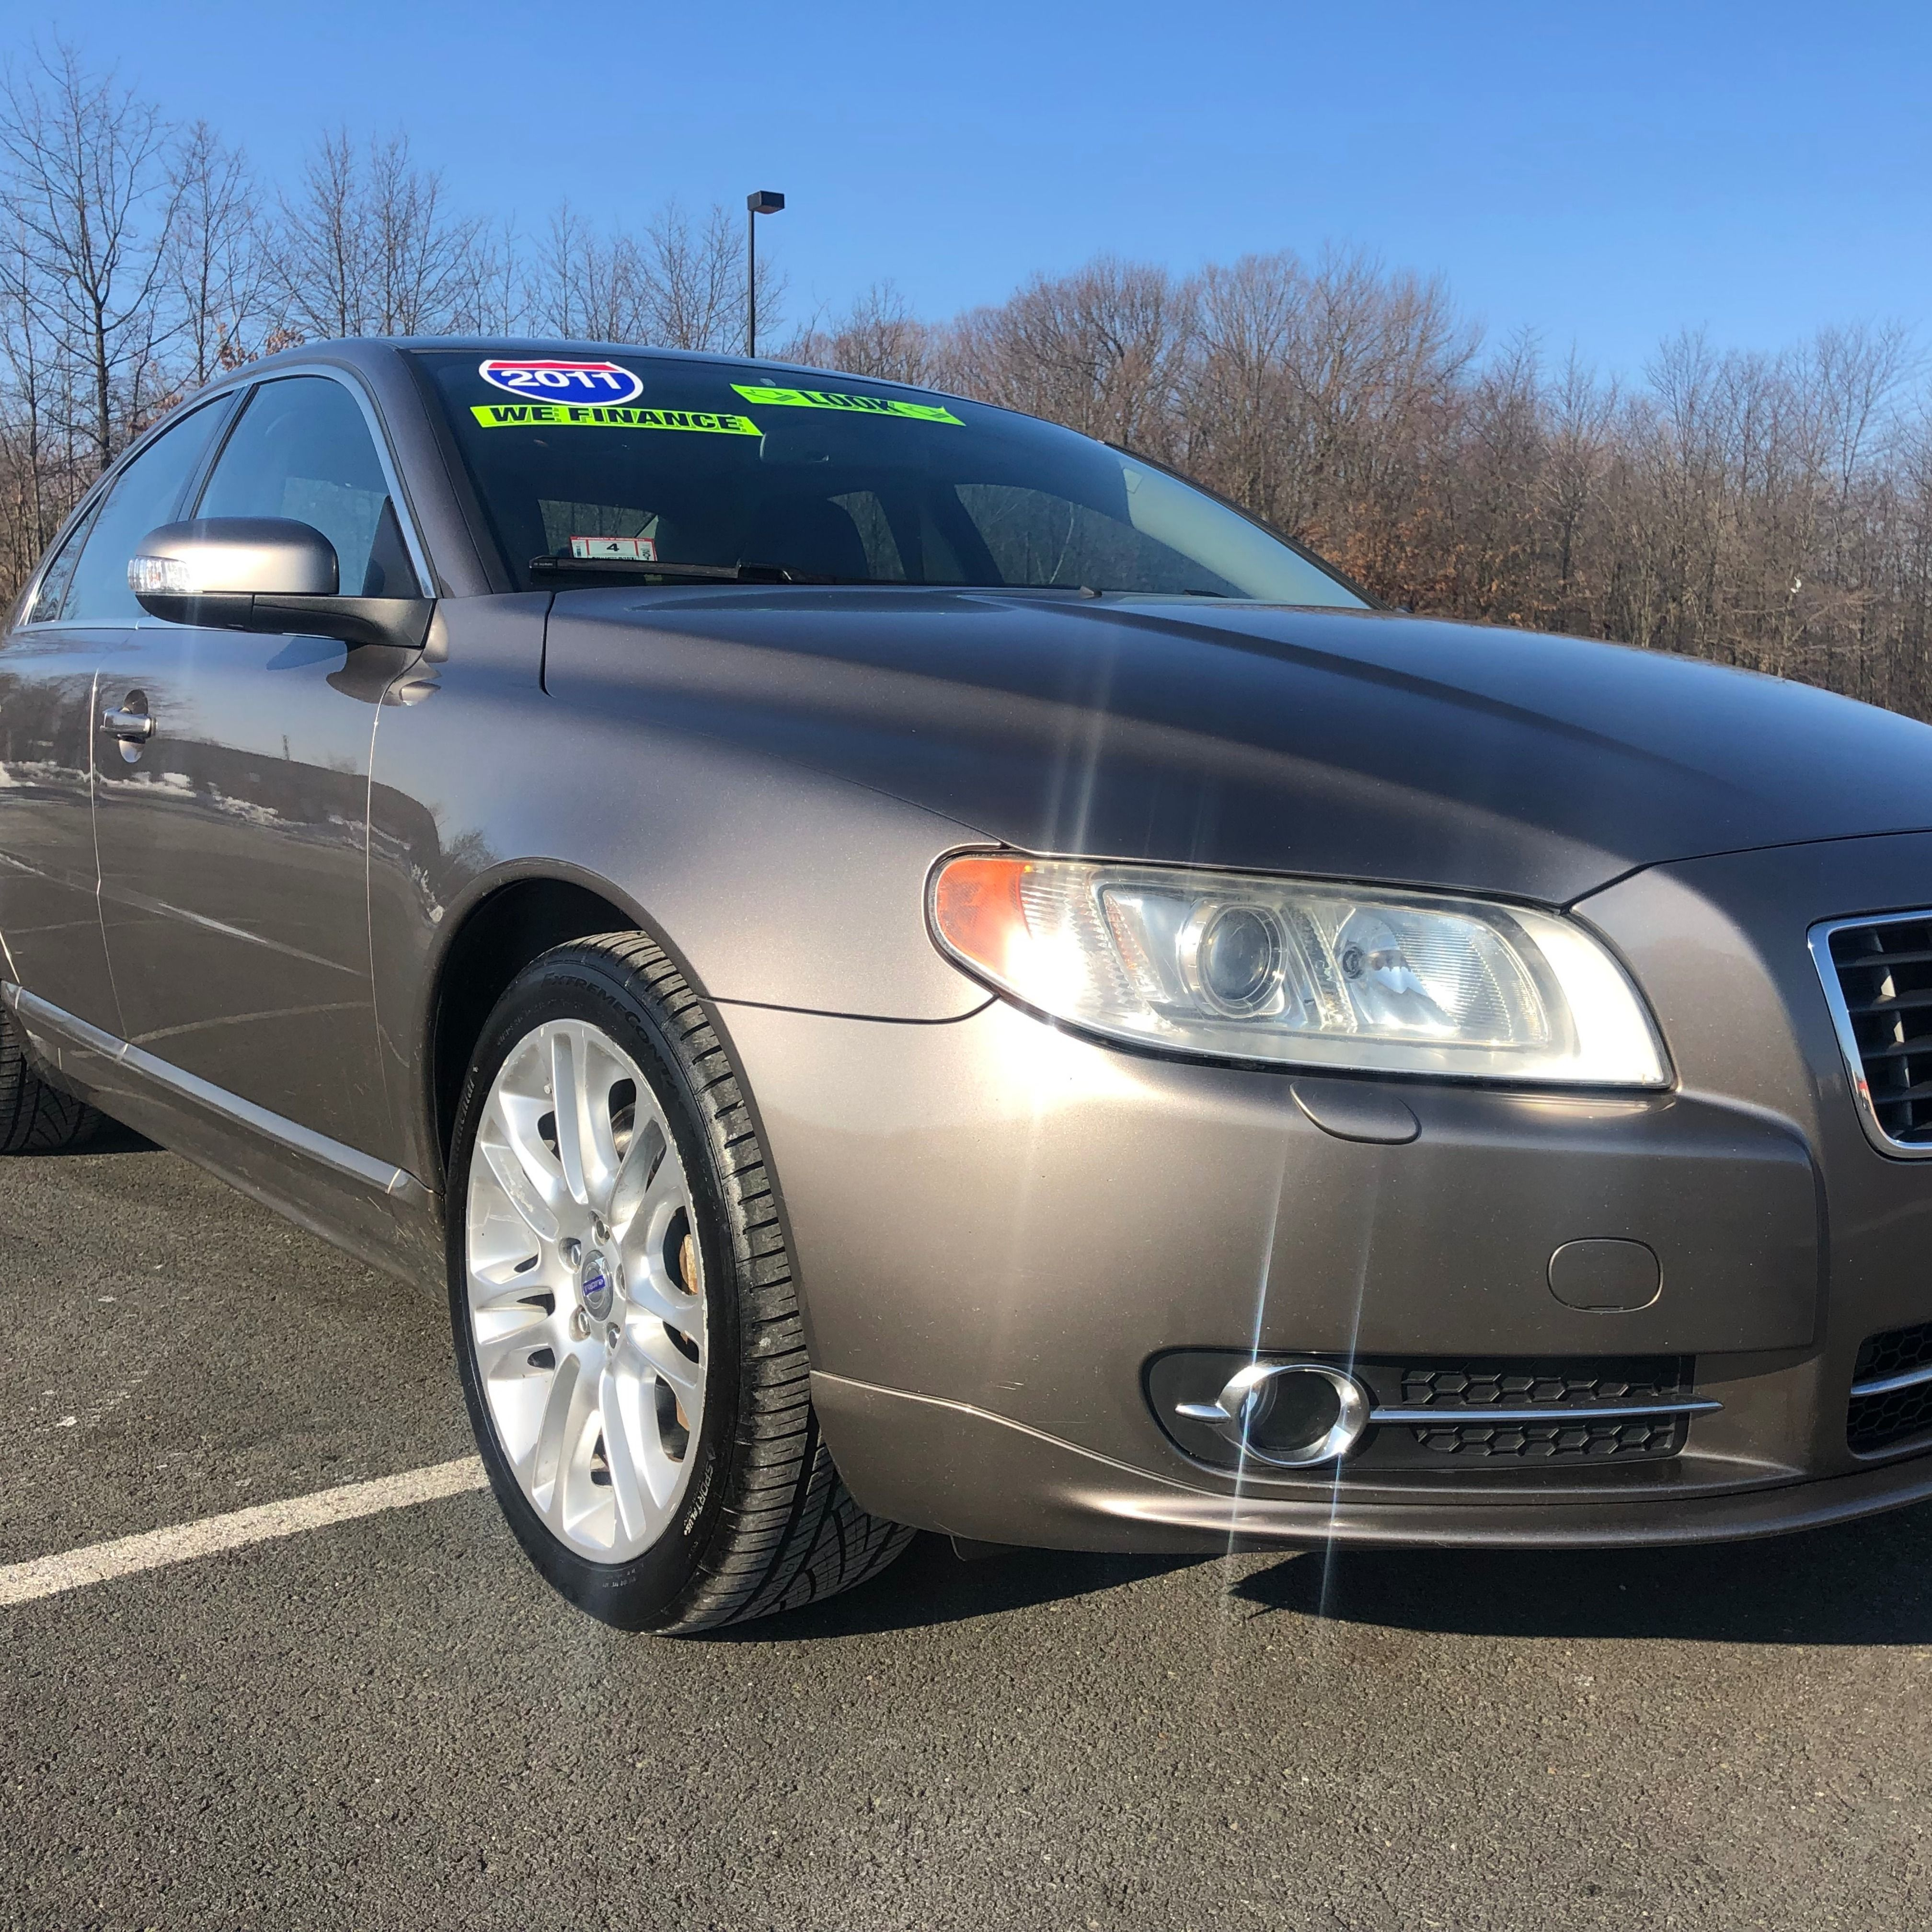 2007 Volvo S80 With 135k Miles Runs And Drives Great Heating And Cooling Front Seats Sunroof Keyless Entry Push Button Start And More Used Cars Volvo